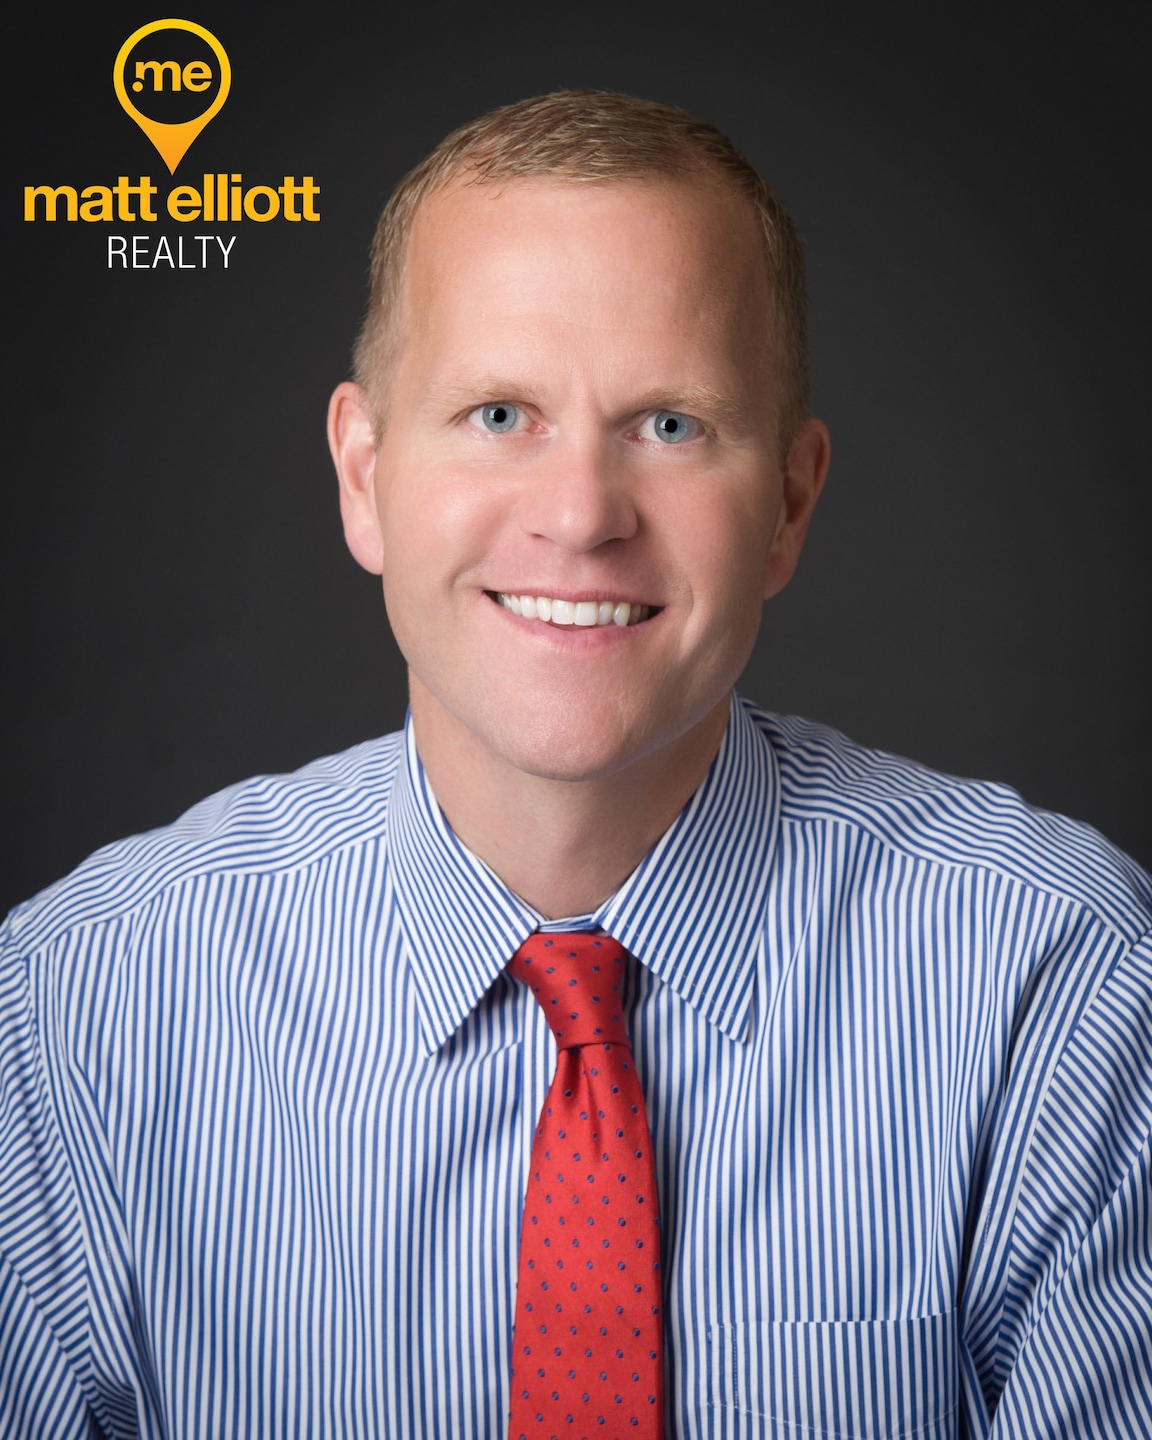 Matt Elliott Realty Reviews  Reston VA  Angies List